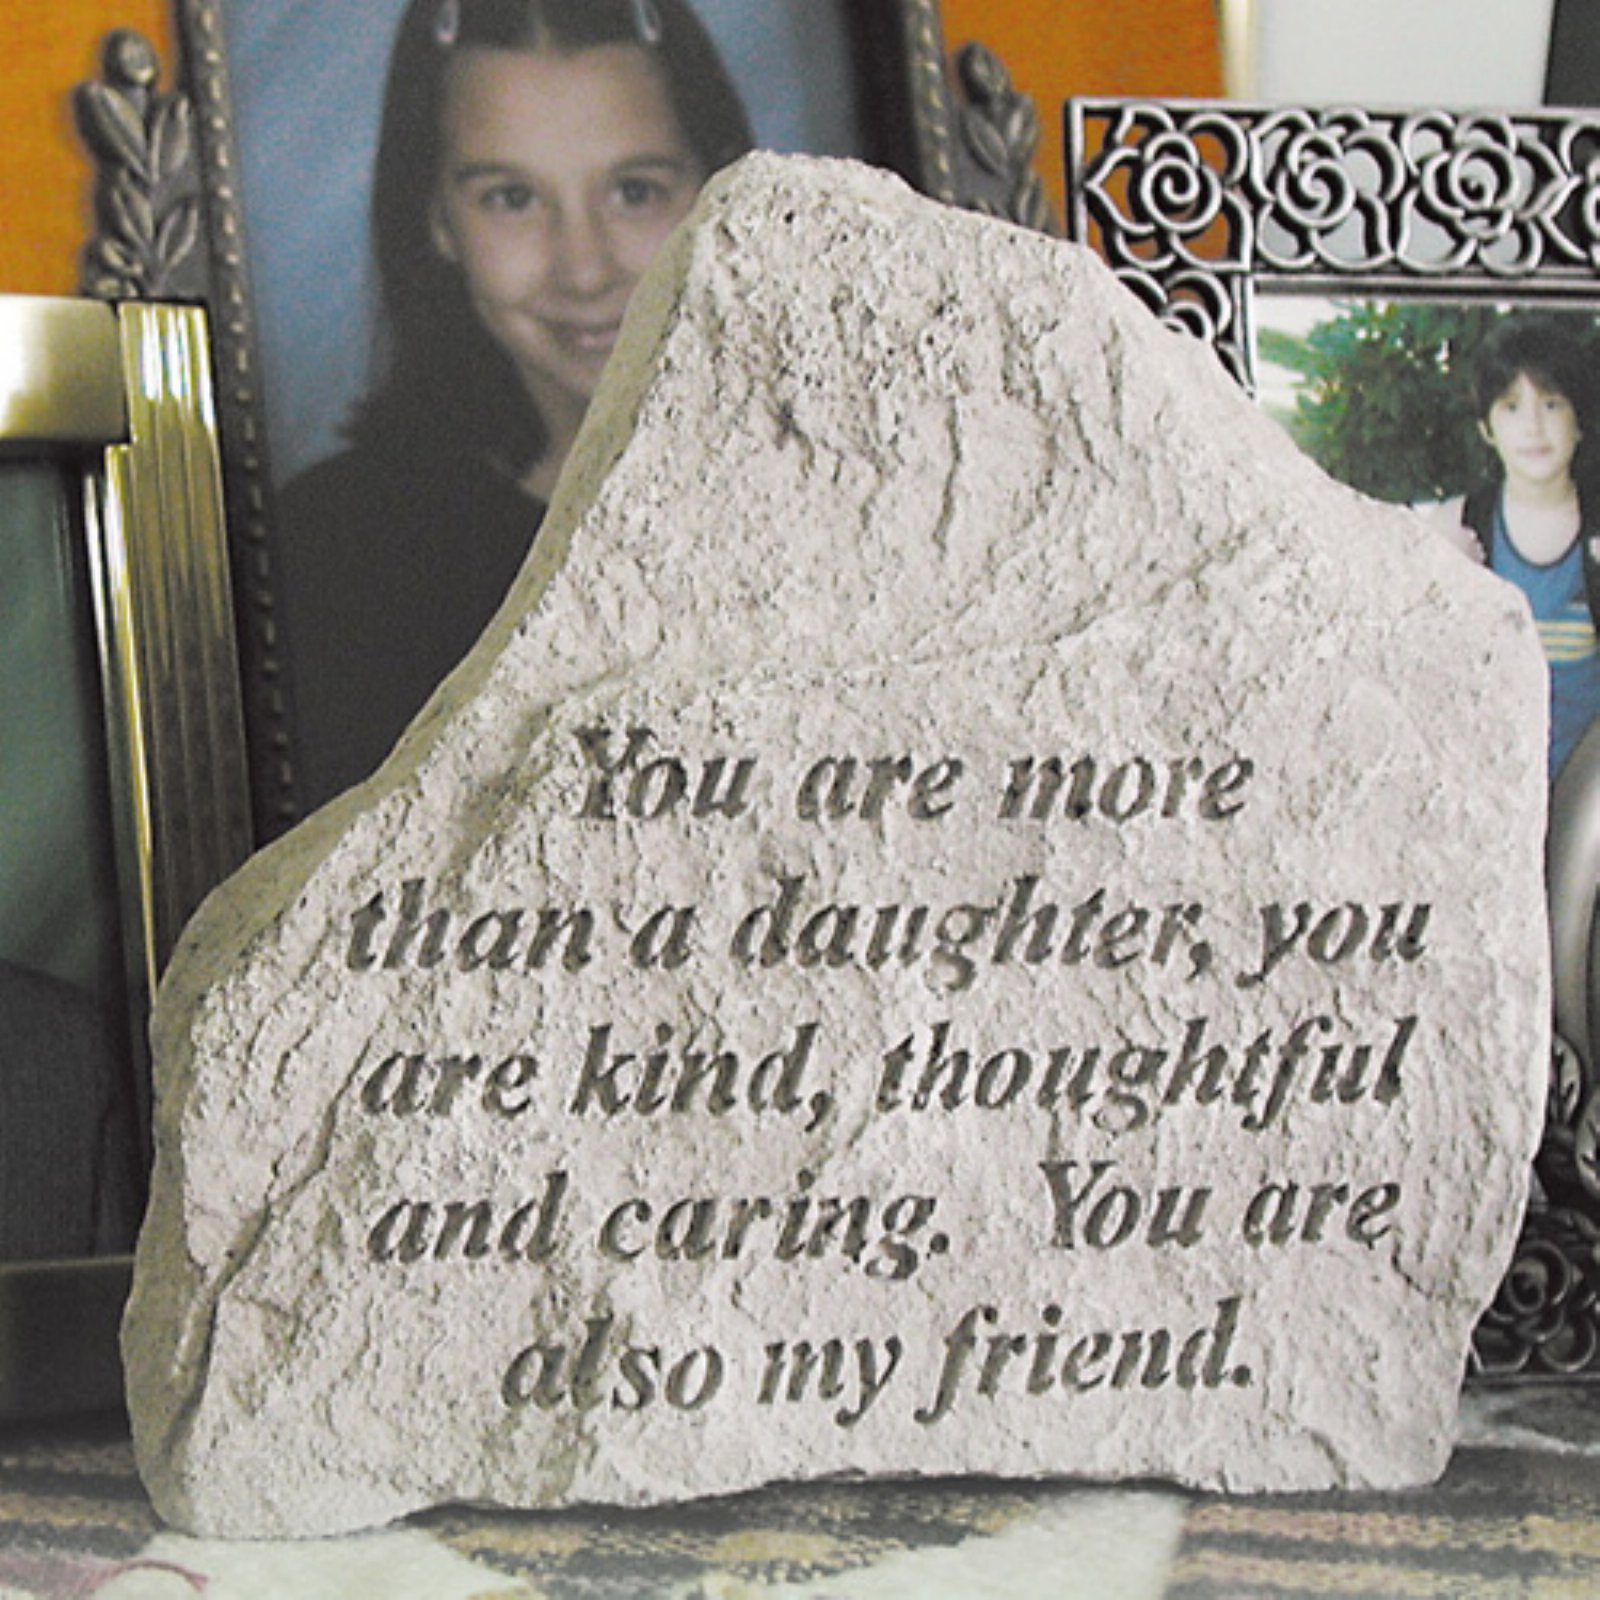 You Are More Than A Daughter Garden Accent Stone by Garden Accents